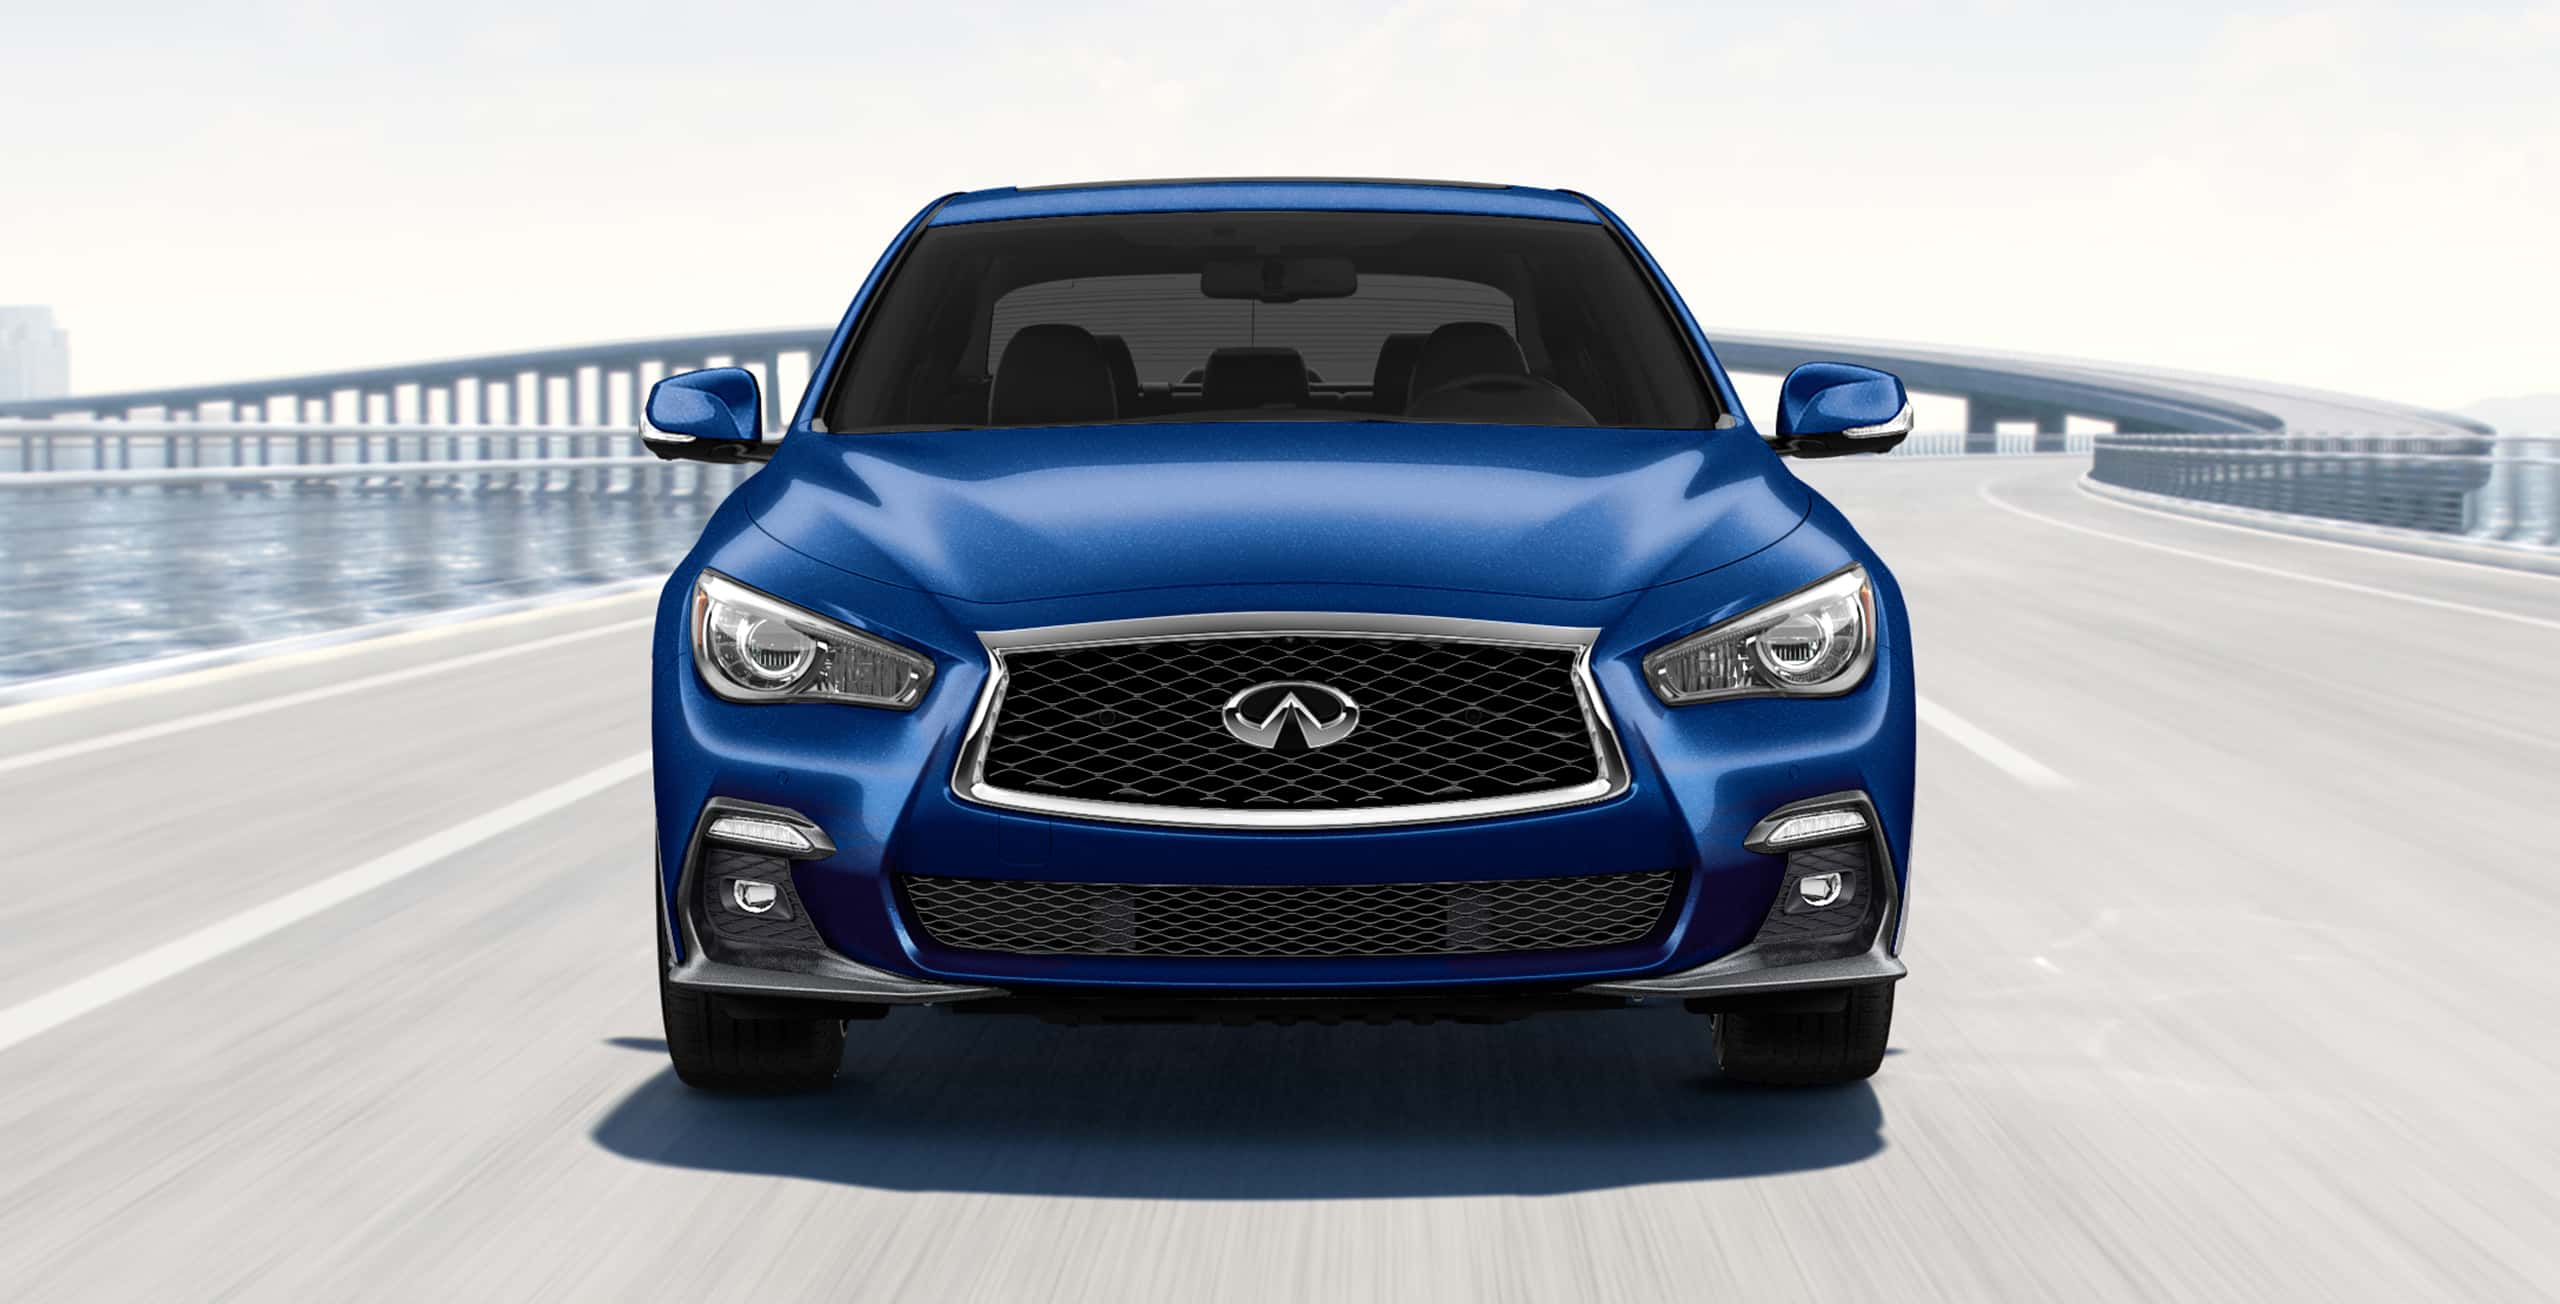 79 Gallery of Best 2019 Infiniti Qx50 Autograph Price Configurations by Best 2019 Infiniti Qx50 Autograph Price